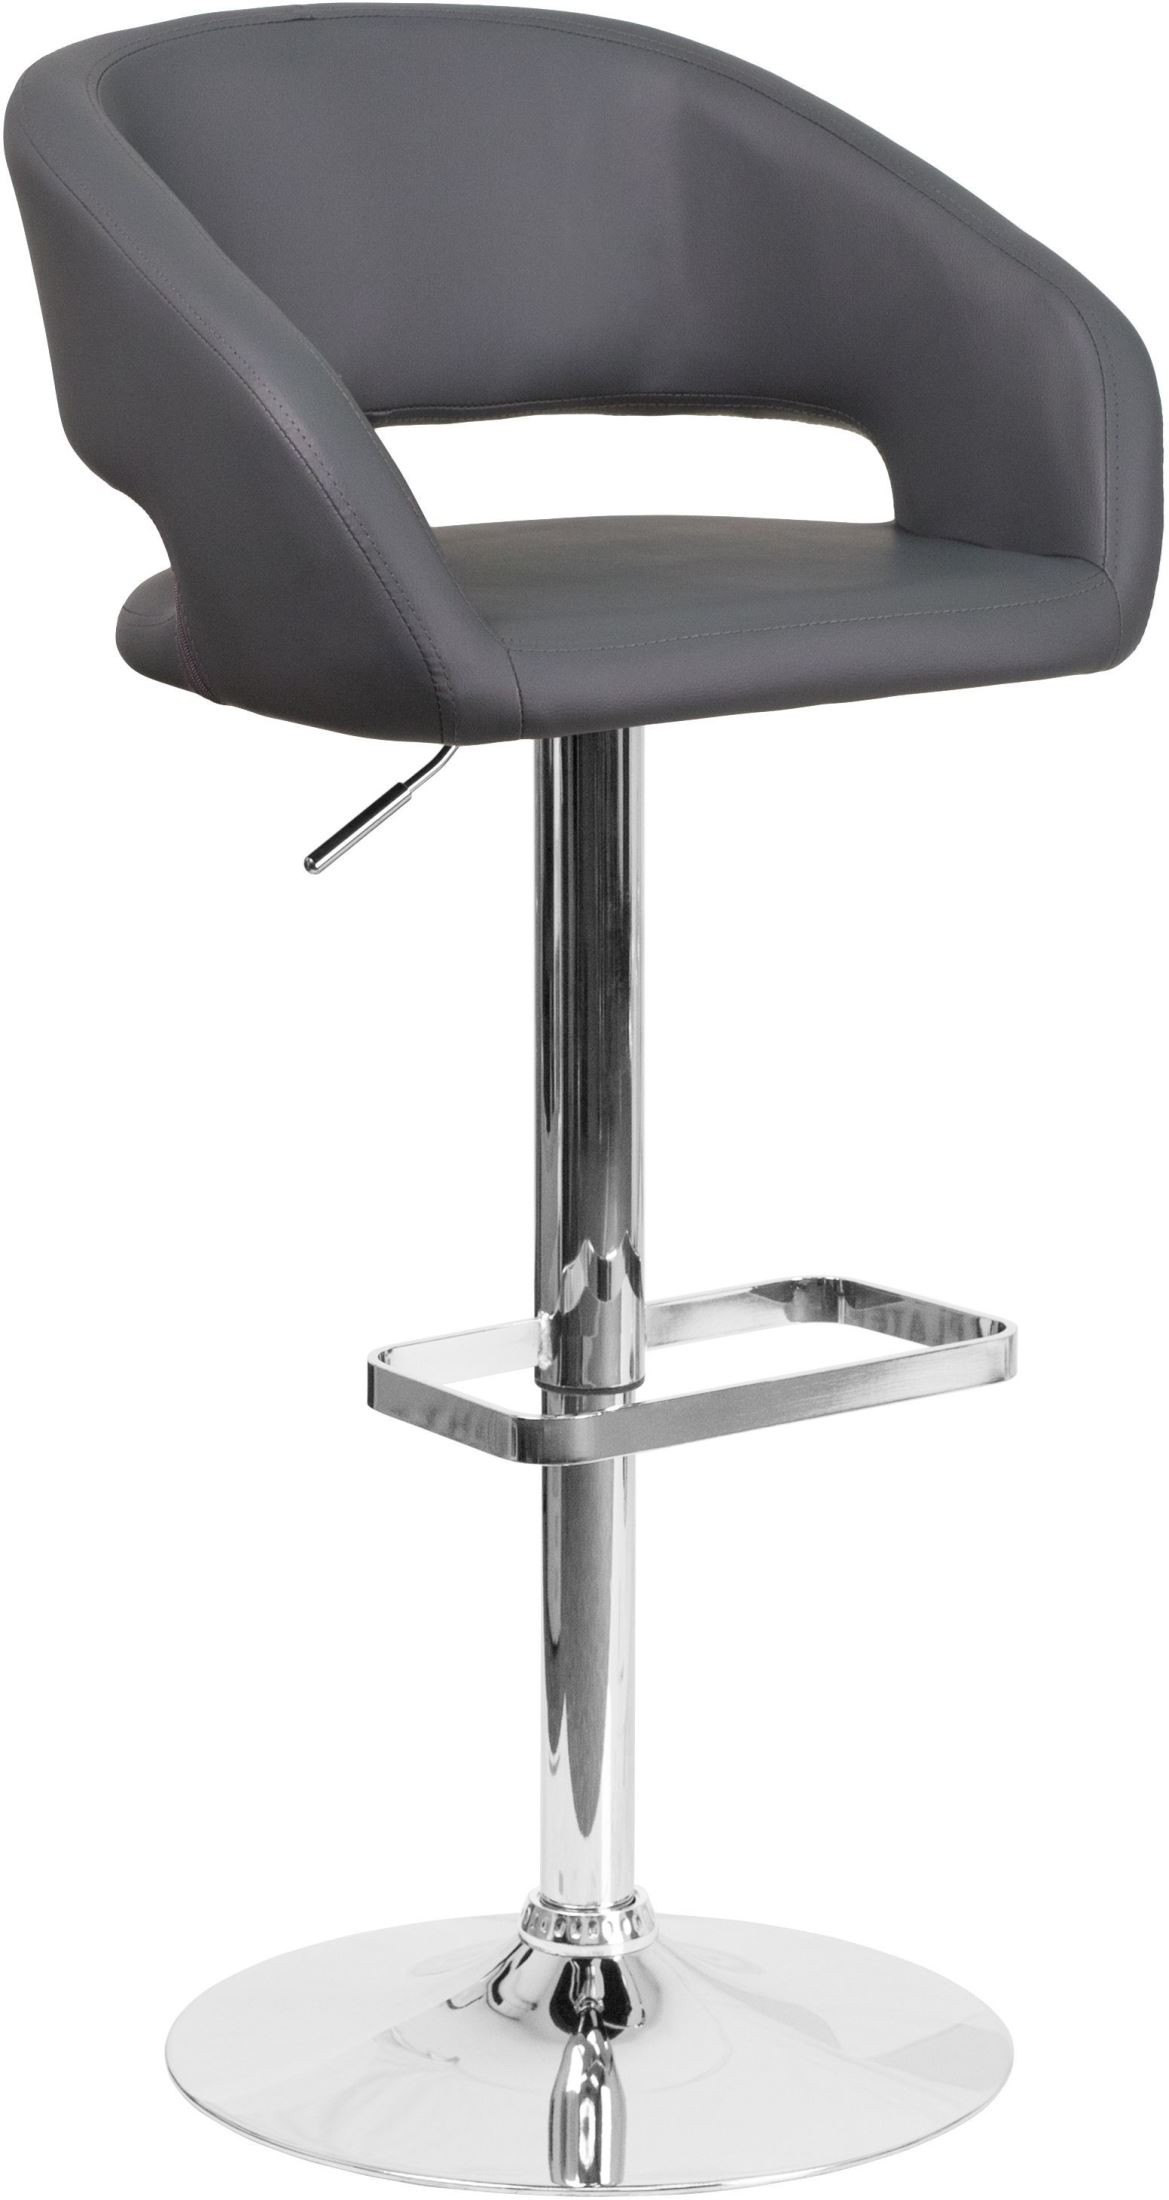 Rounded Gray Vinyl Adjustable Height Bar Stool Min Order  : ch 122070 gy gg from colemanfurniture.com size 1169 x 2200 jpeg 179kB